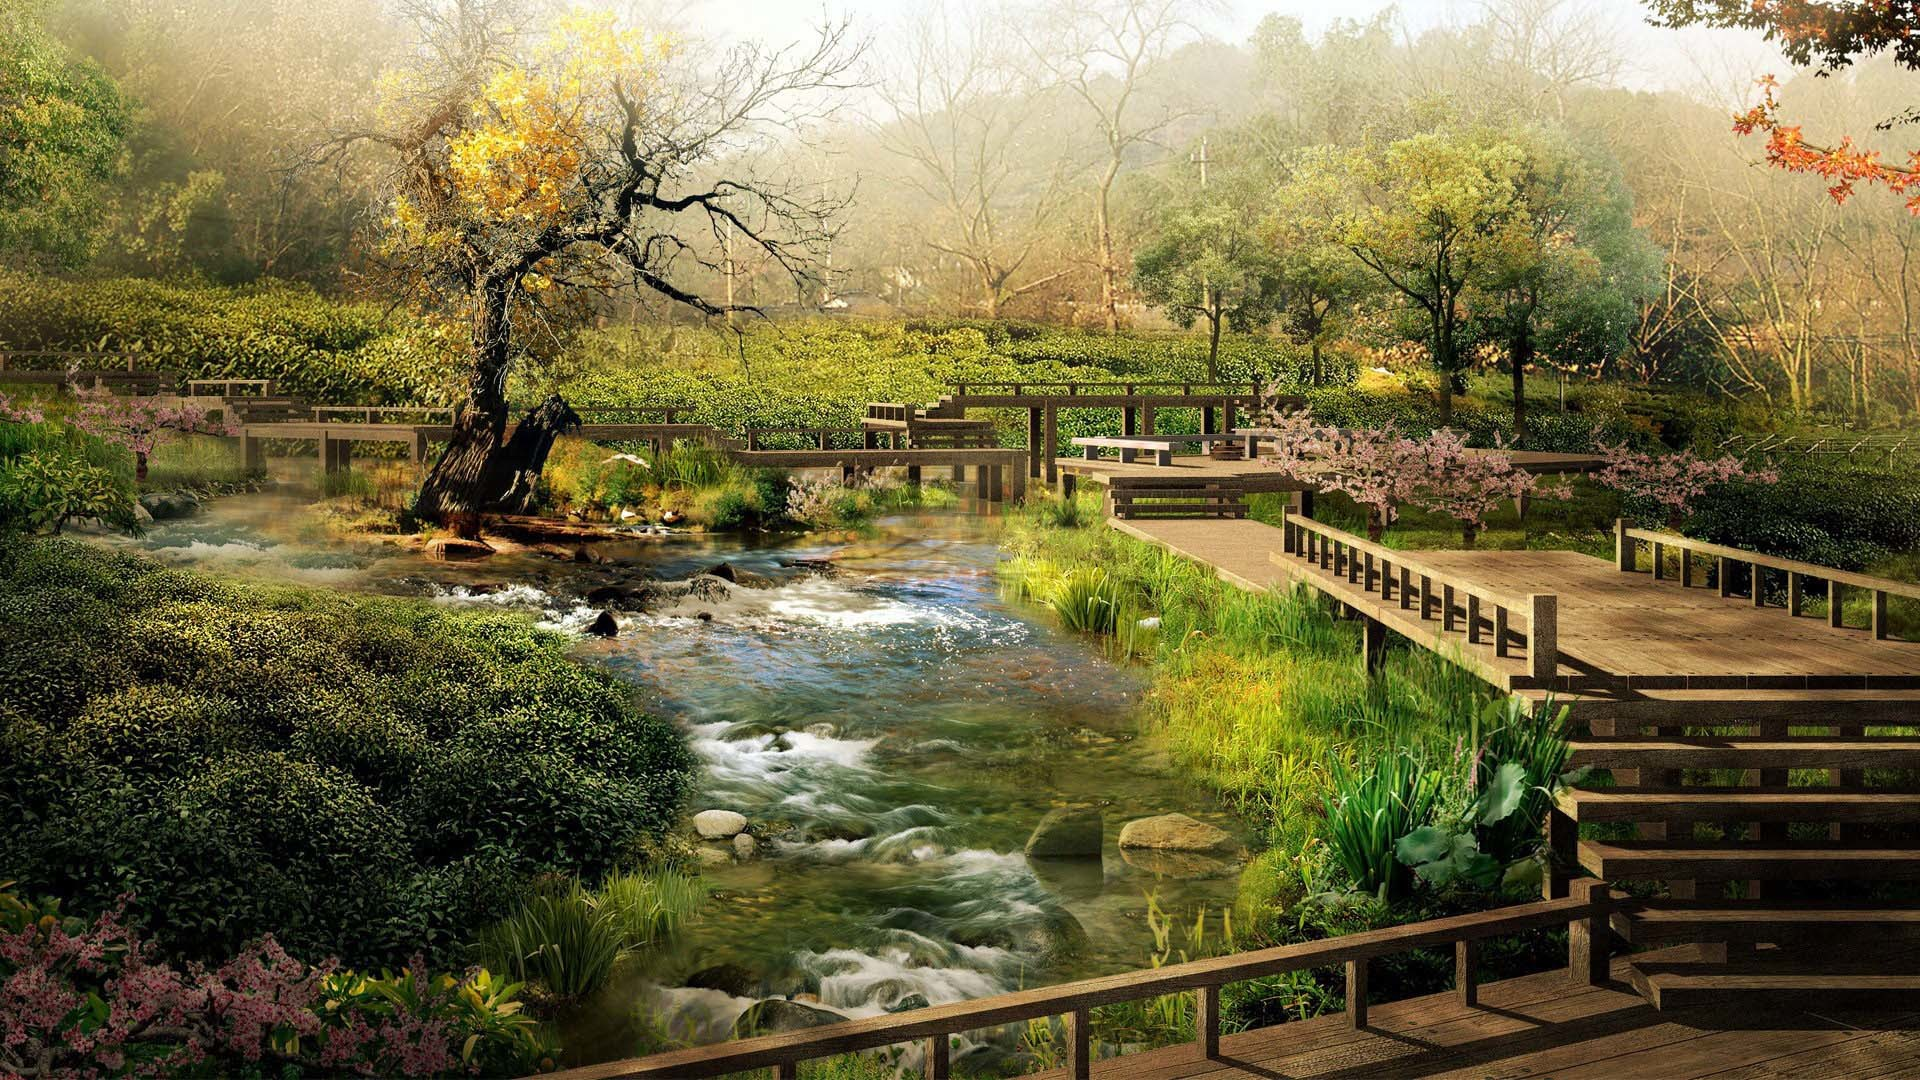 Best Scenery HD Wallpaper | Scenery Images Free | Cool Wallpapers